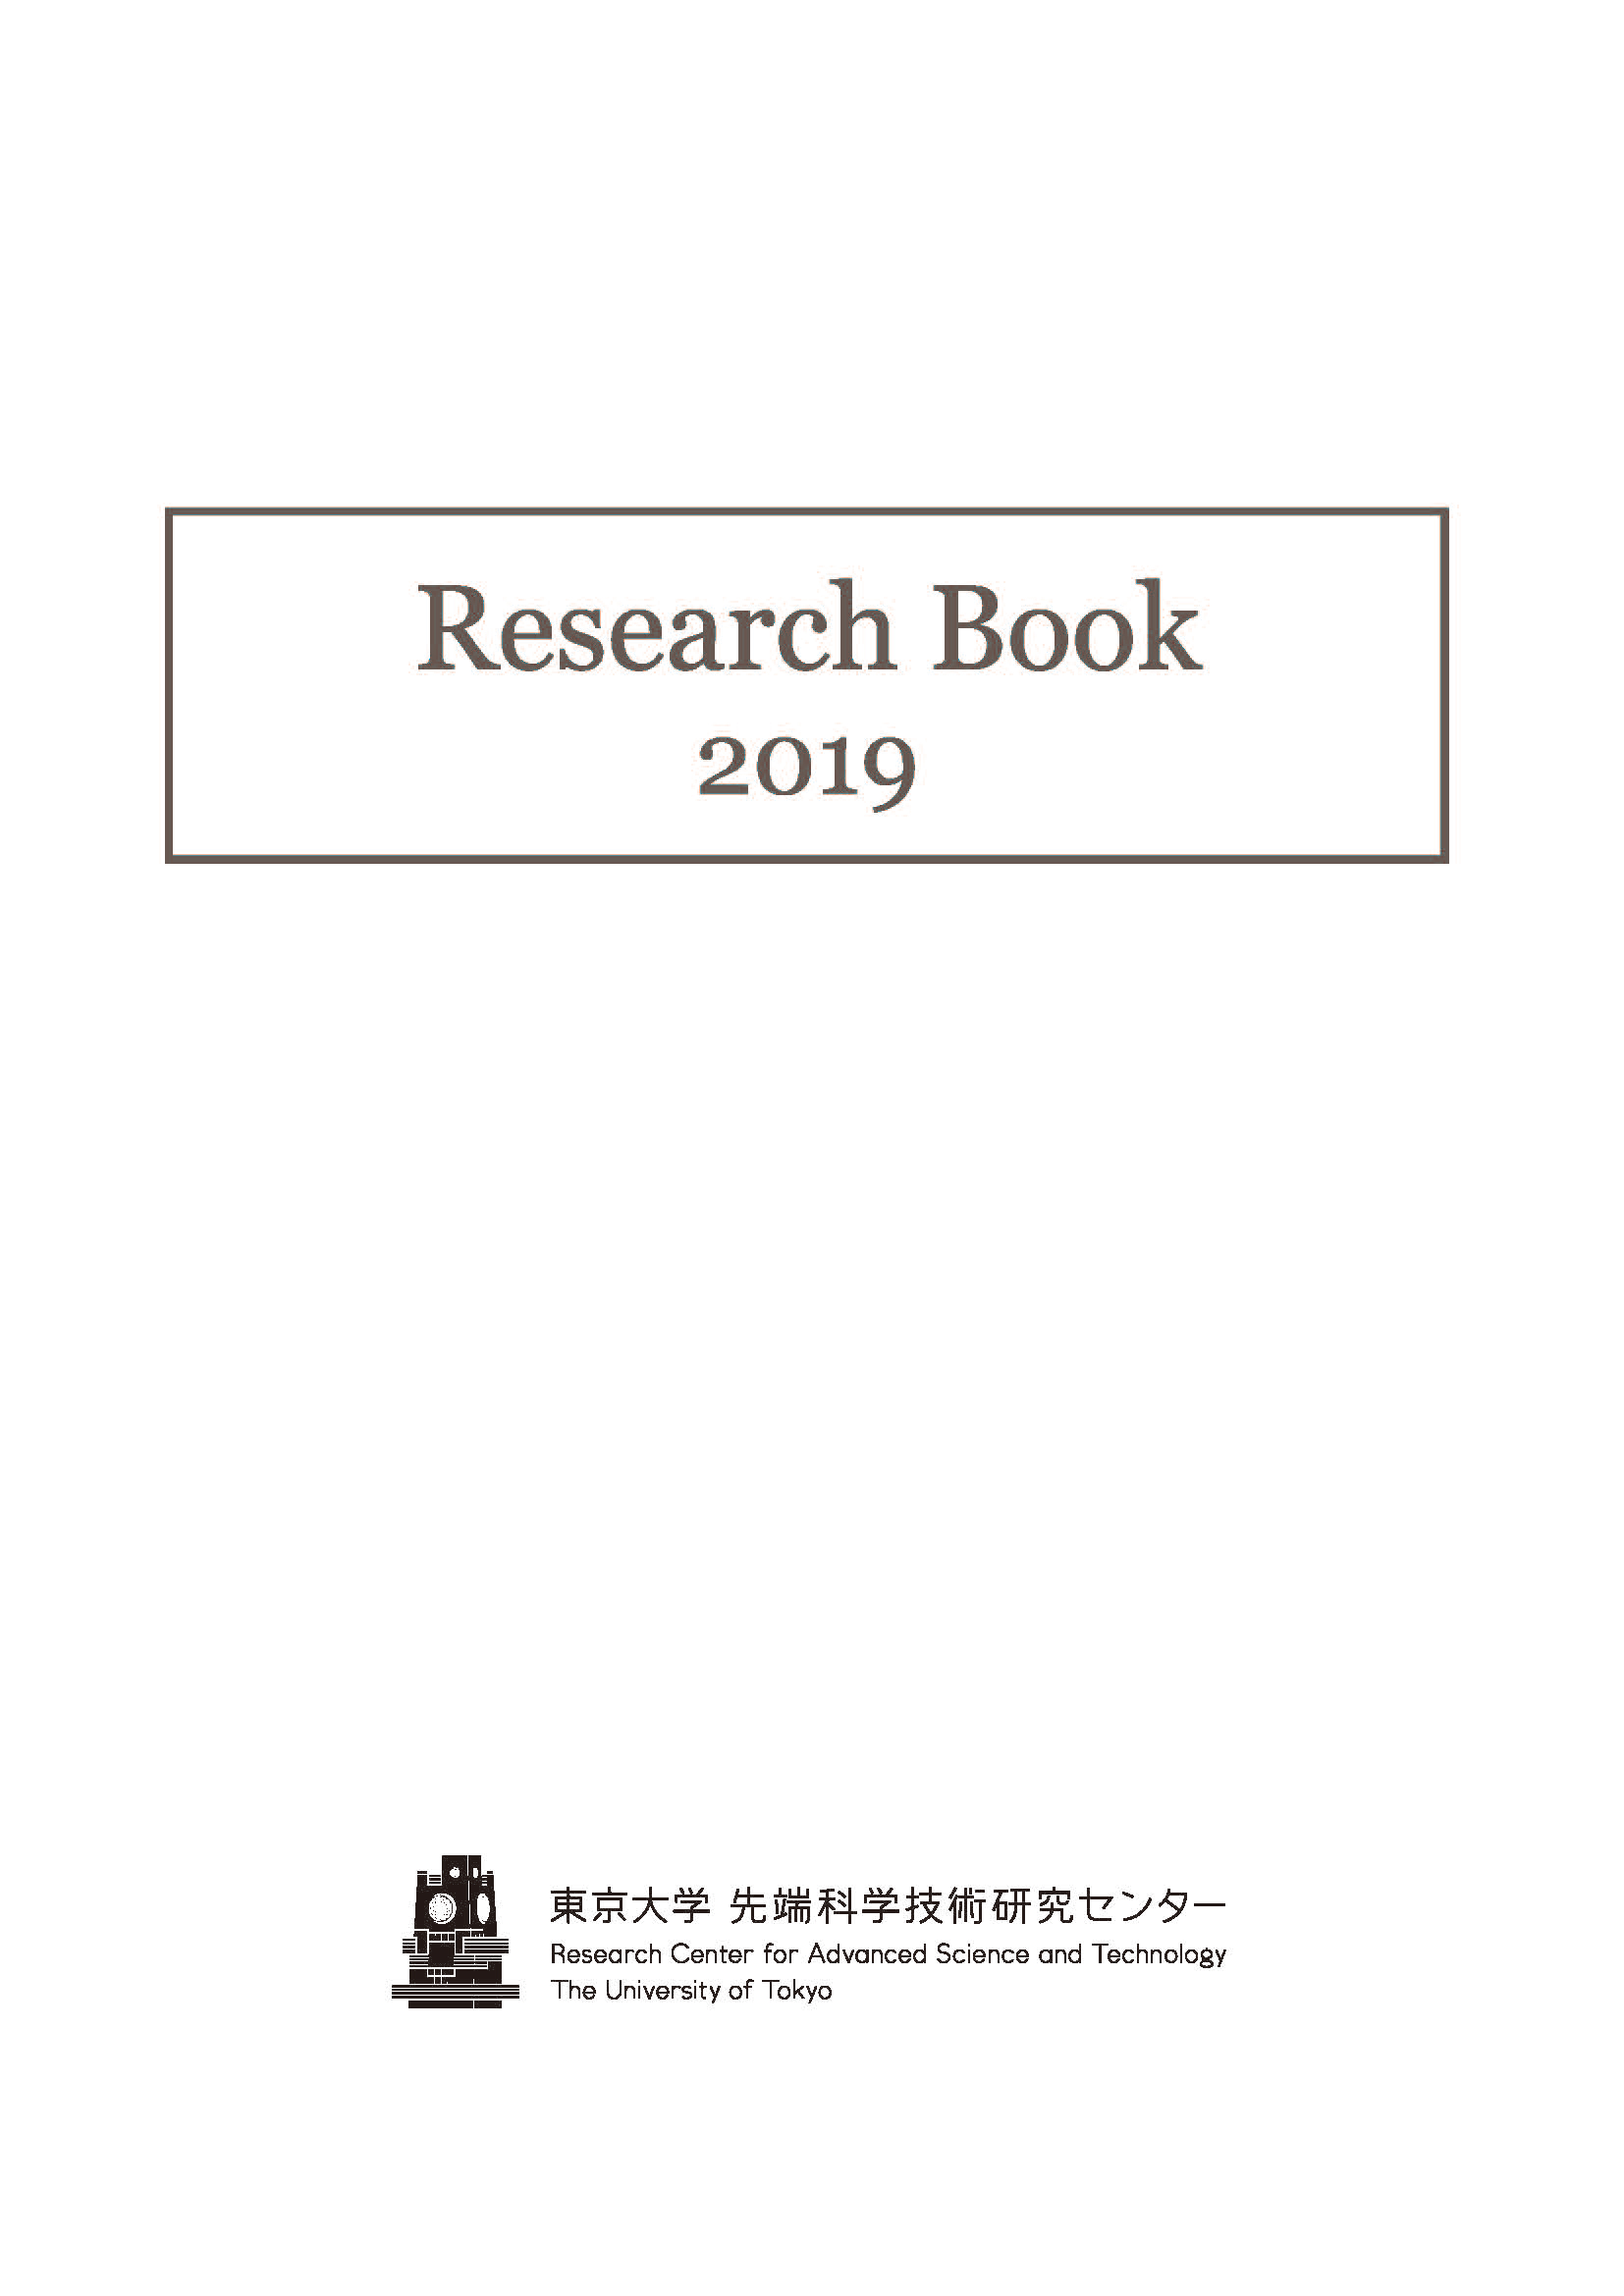 2019 Research BOOK cover